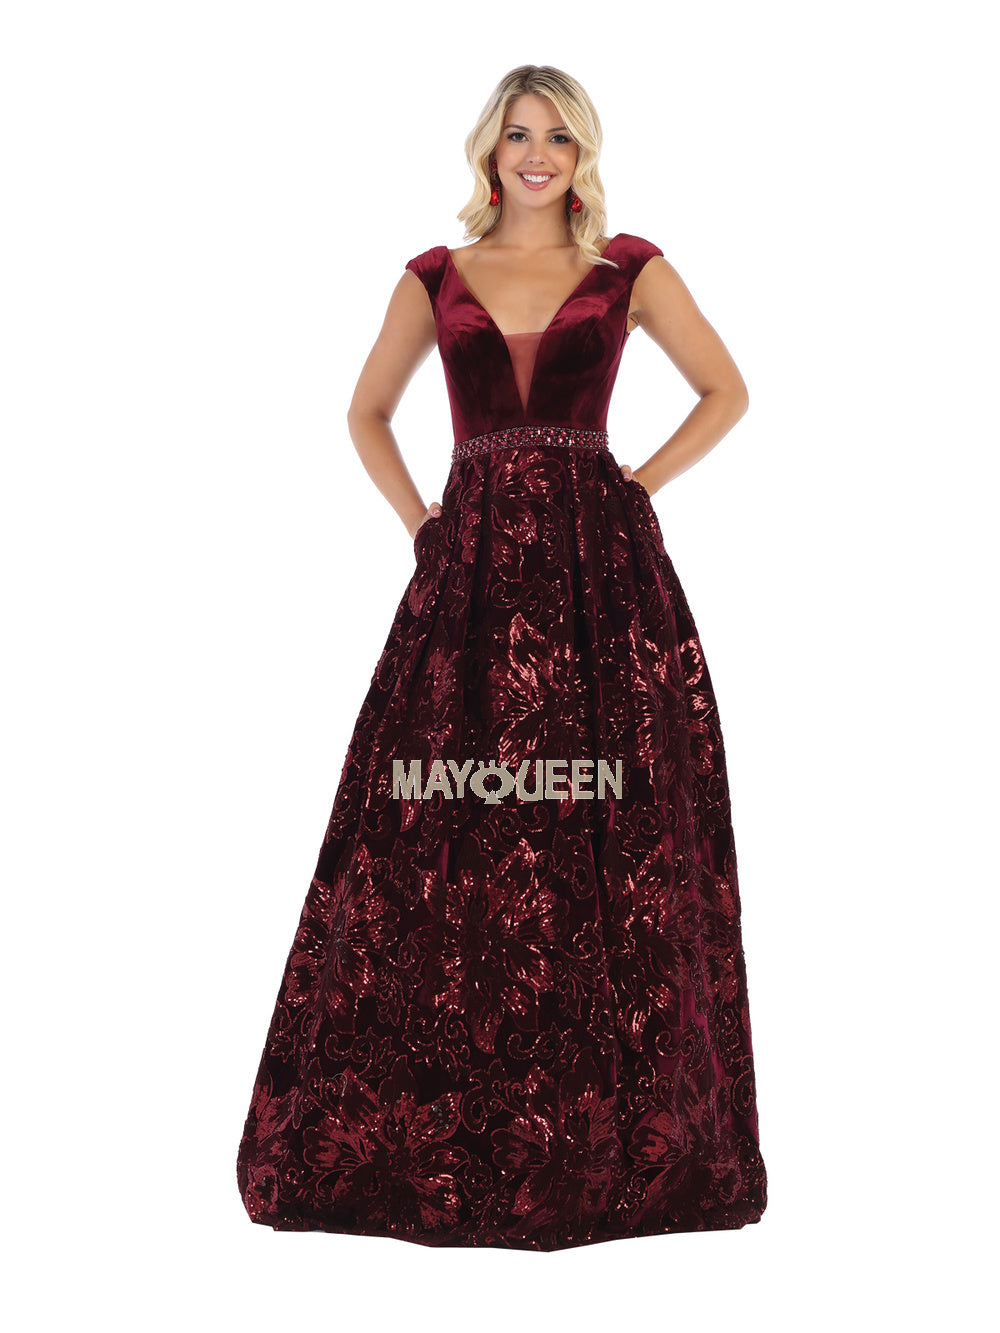 Mayqueen Size Chart E MQ 7674 - Cap sleeve sequins long velvet dress with side pockets - Diggz Prom